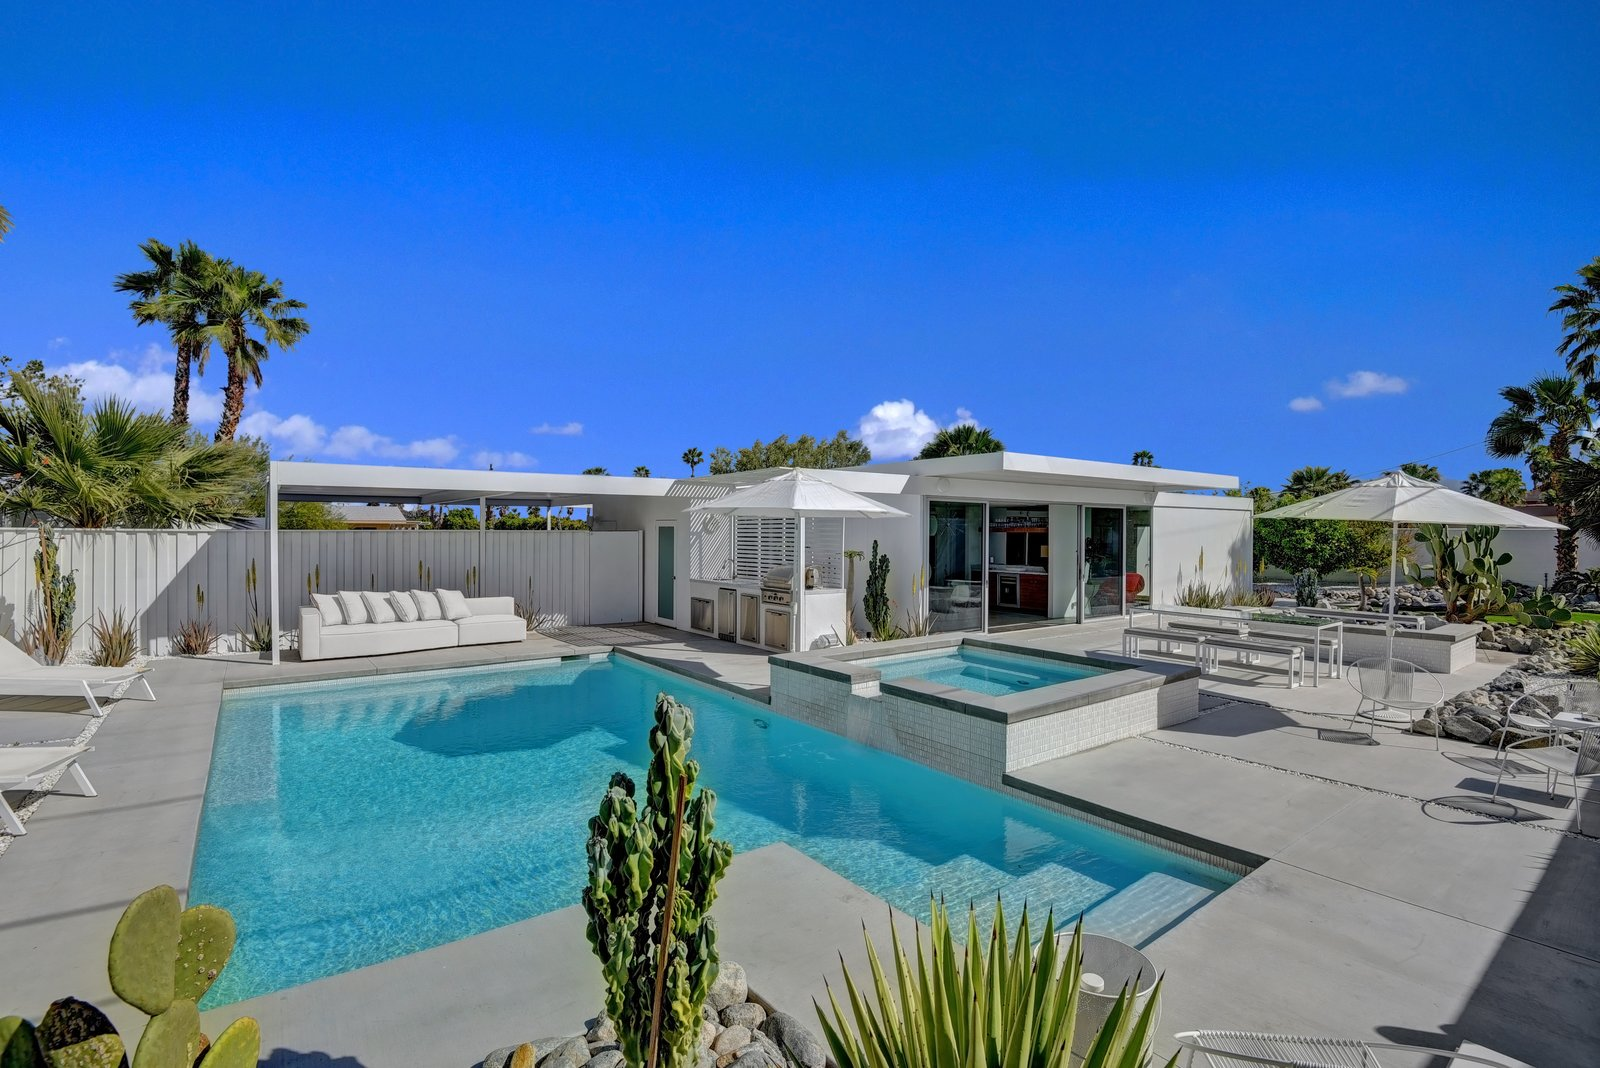 Facing east from pool and spa to outdoor kitchen and house.